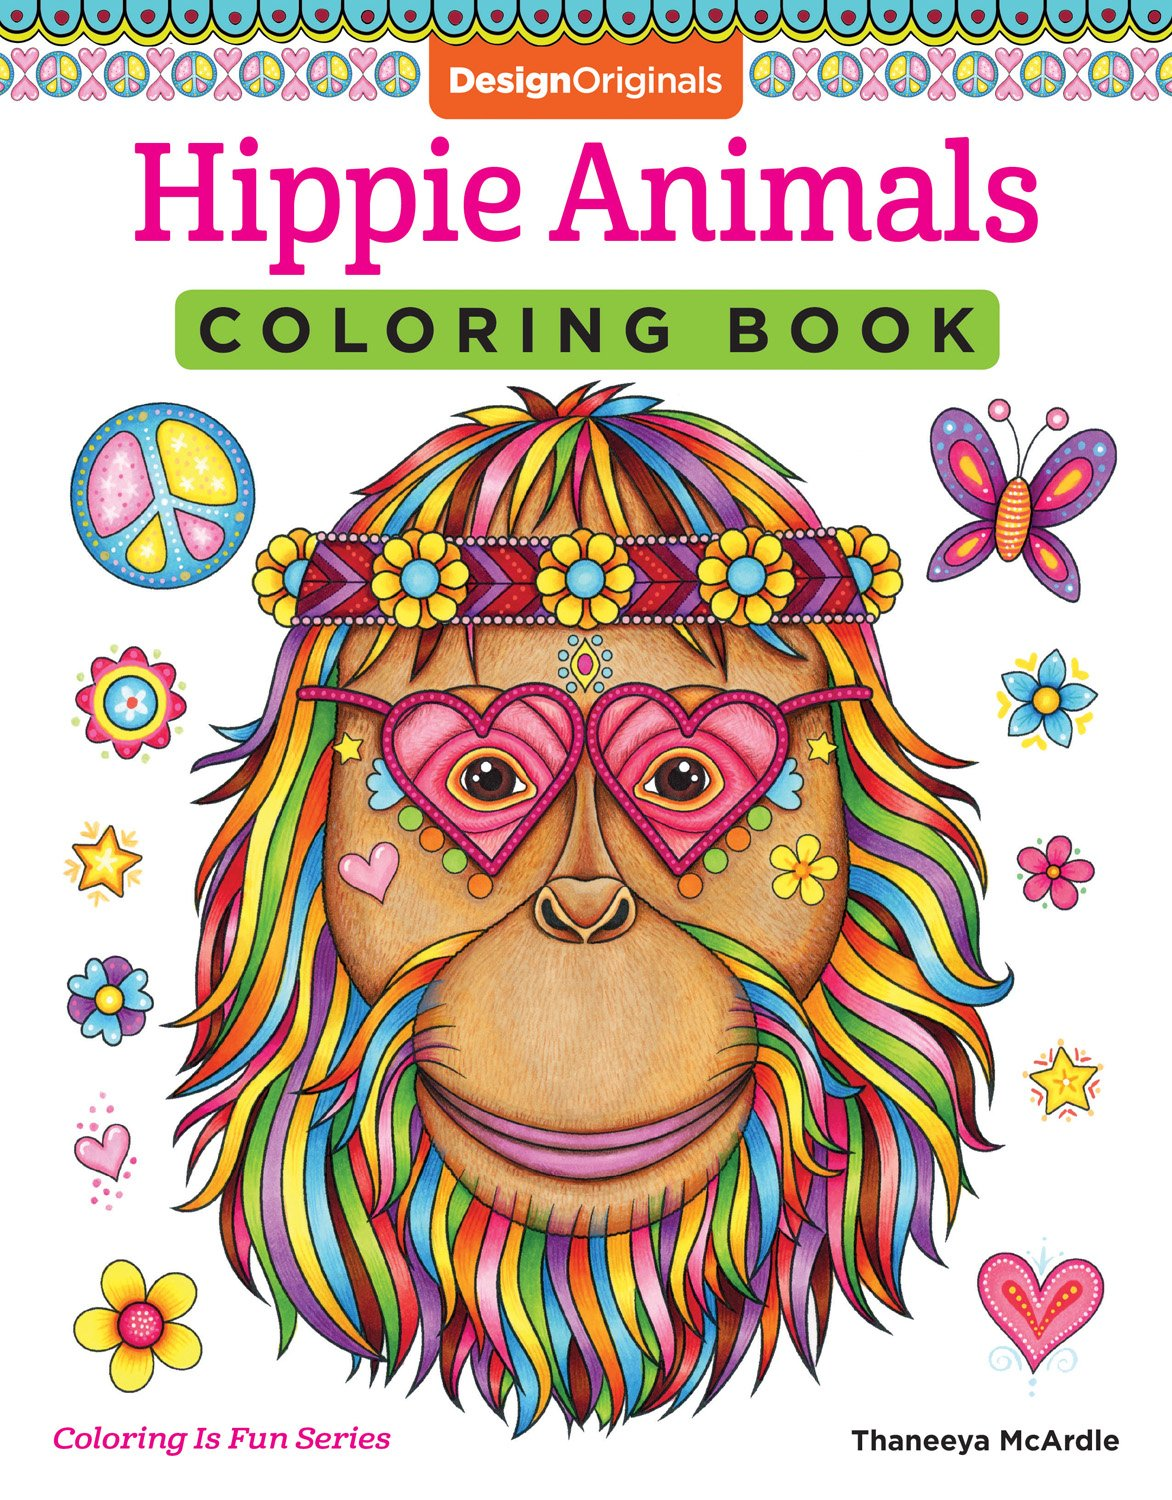 Amazon Hippie Animals Coloring Book Is Fun Design Originals 32 Groovy Totally Chill Animal Designs From Thaneeya McArdle On High Quality